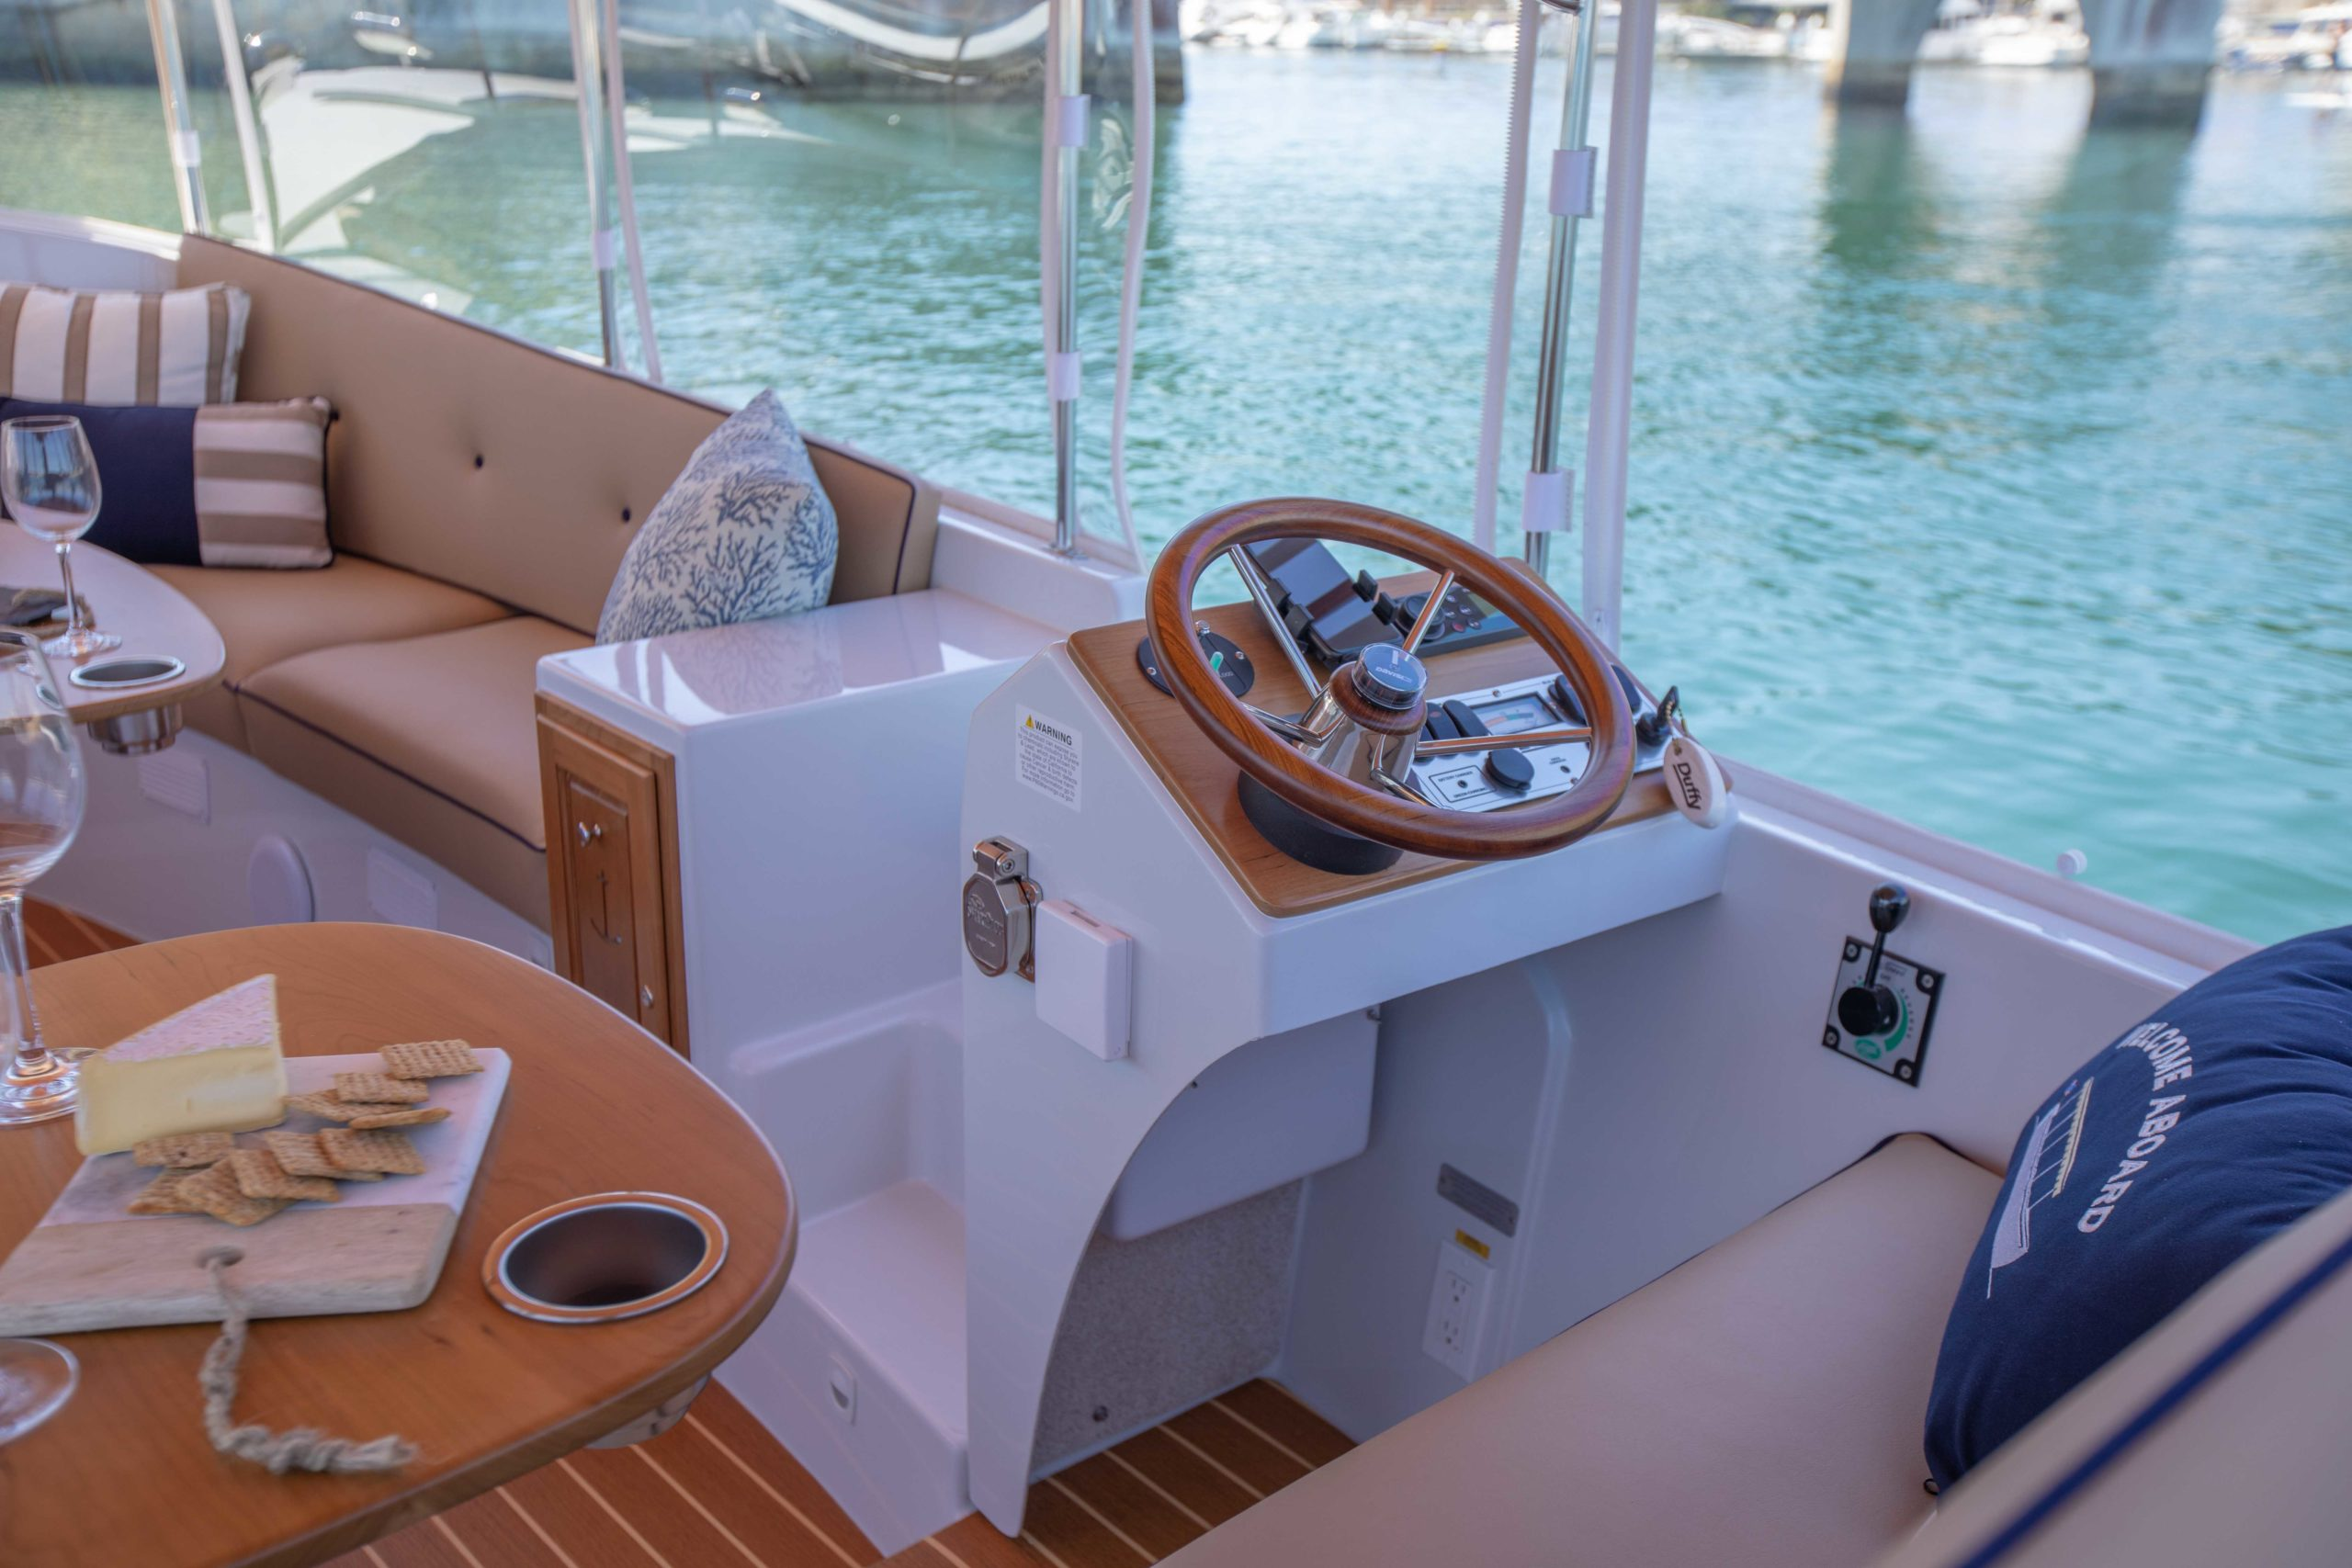 Duffy-Electric-Boats-22-Cuddy-Cabin-Interior-4